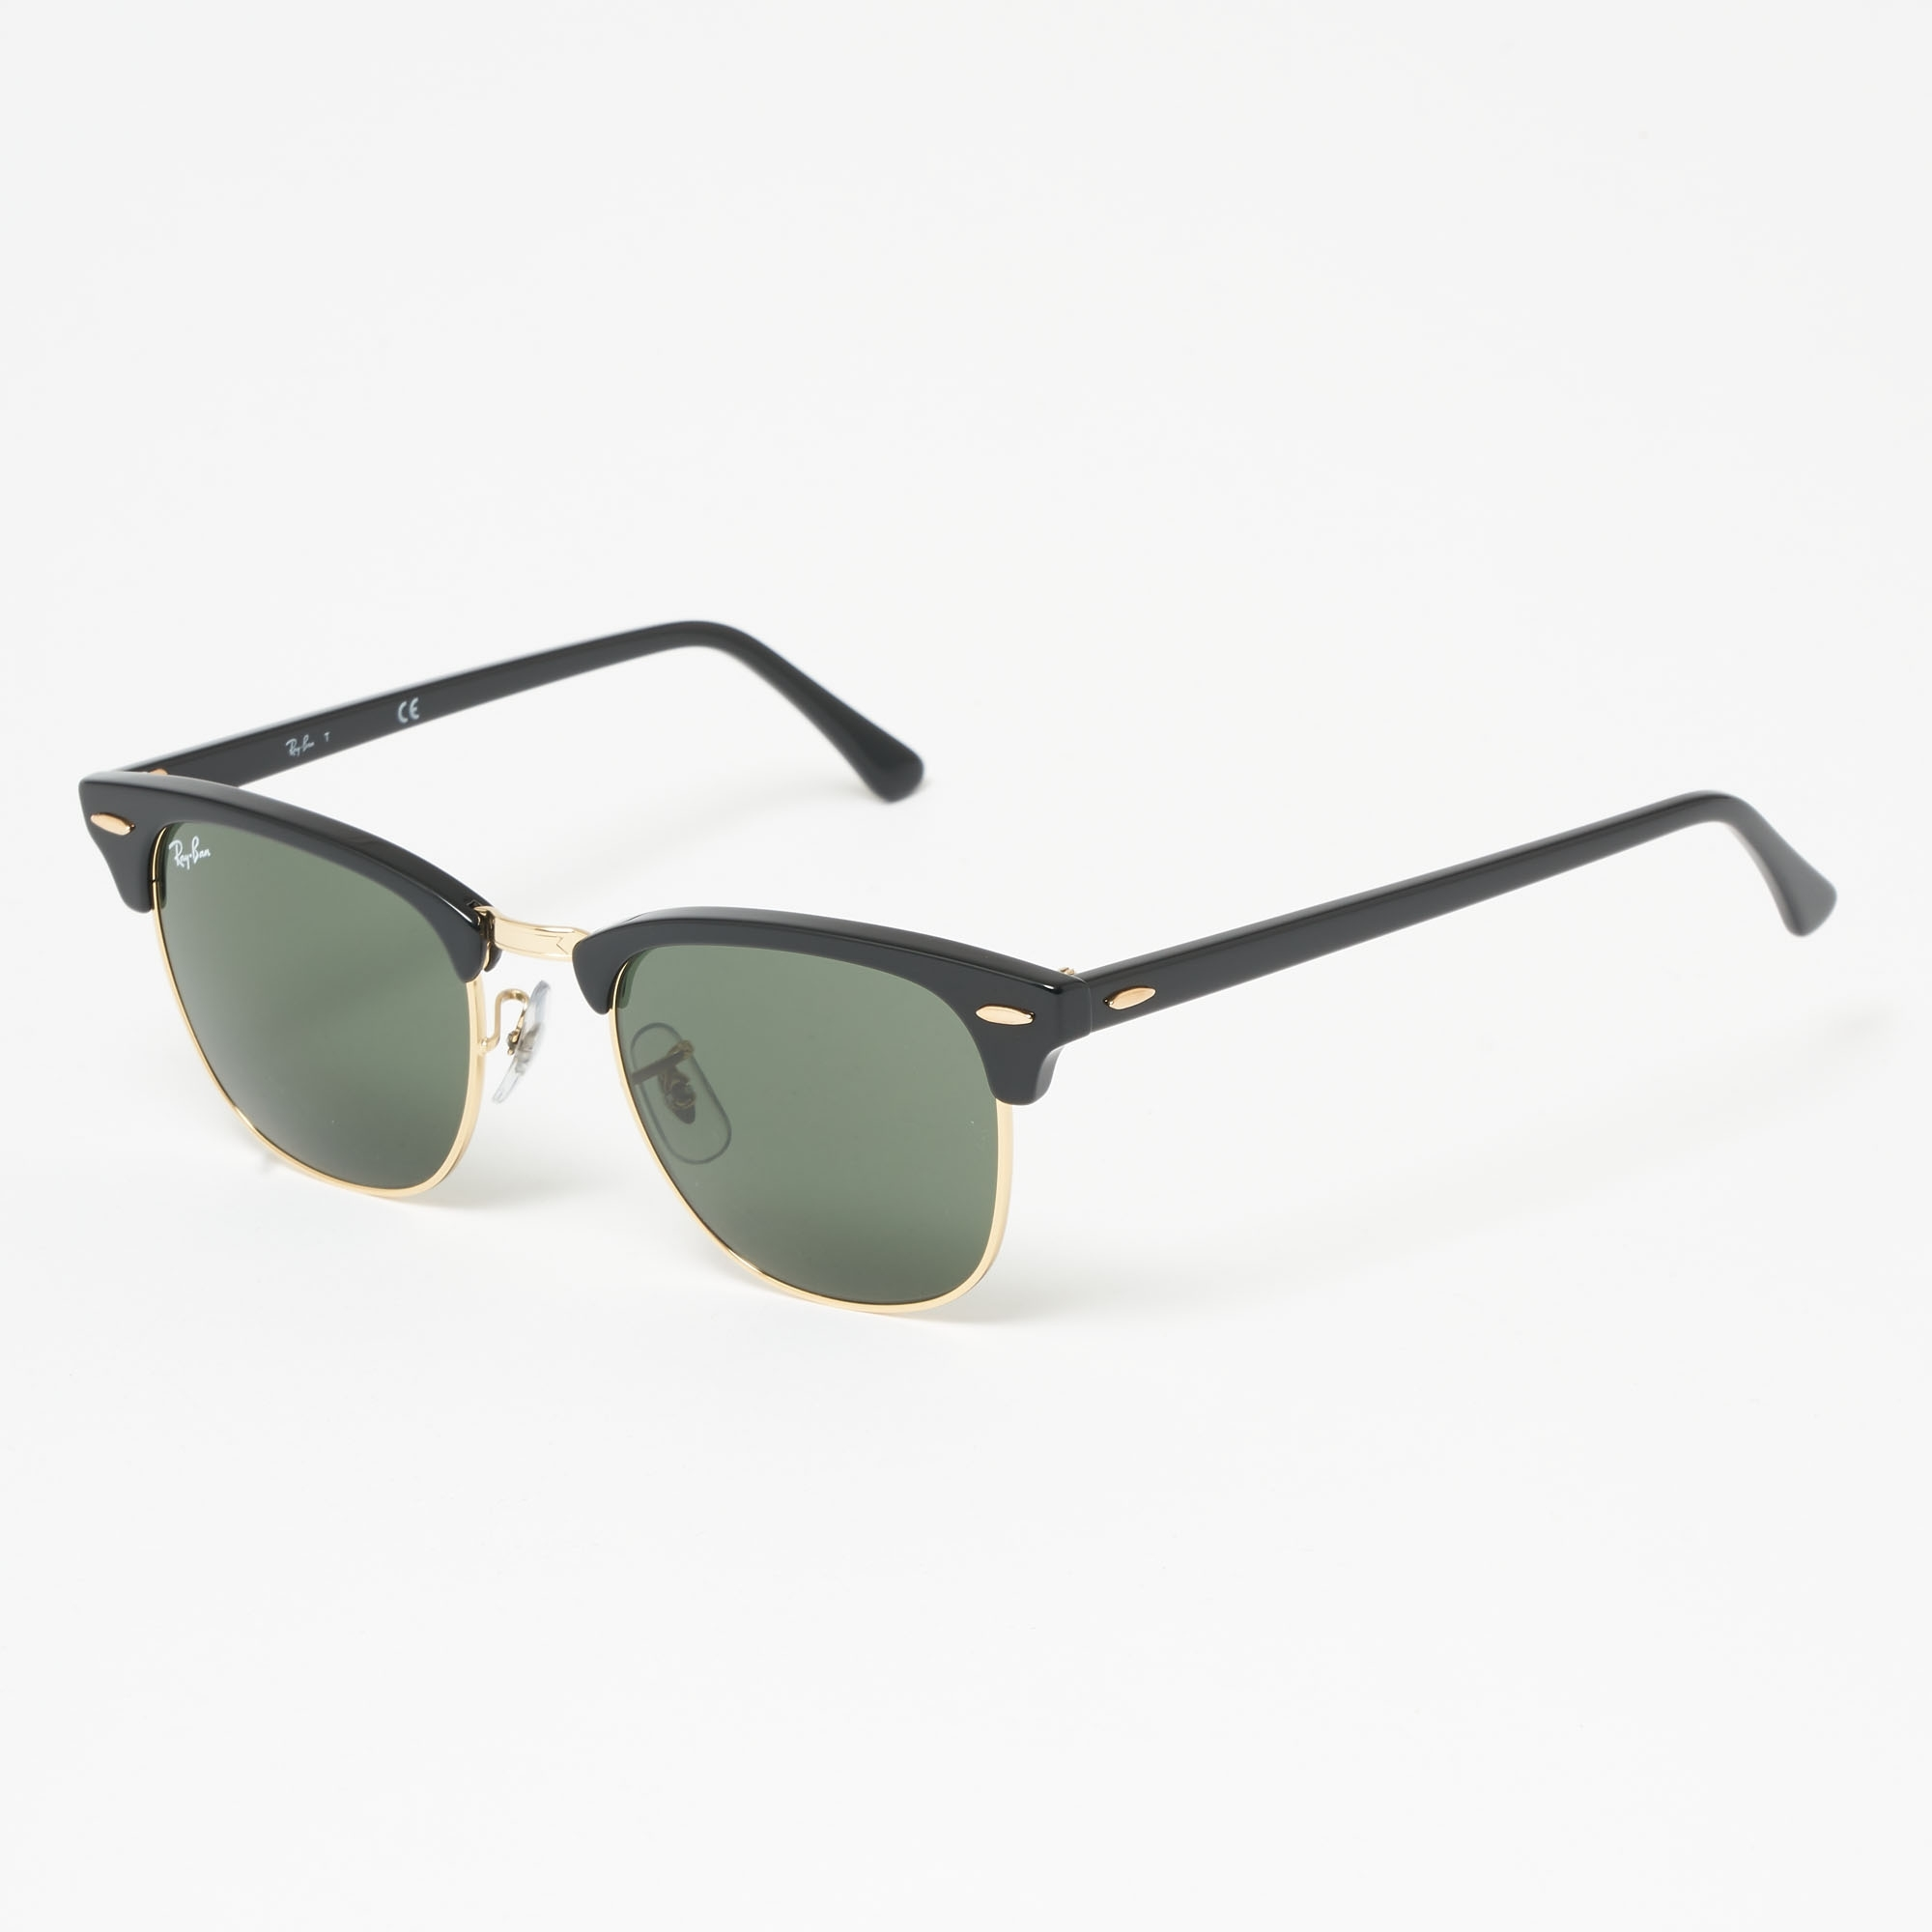 Ray Ban Clubround Classic Sunglasses Green Classic G 15 Lenses